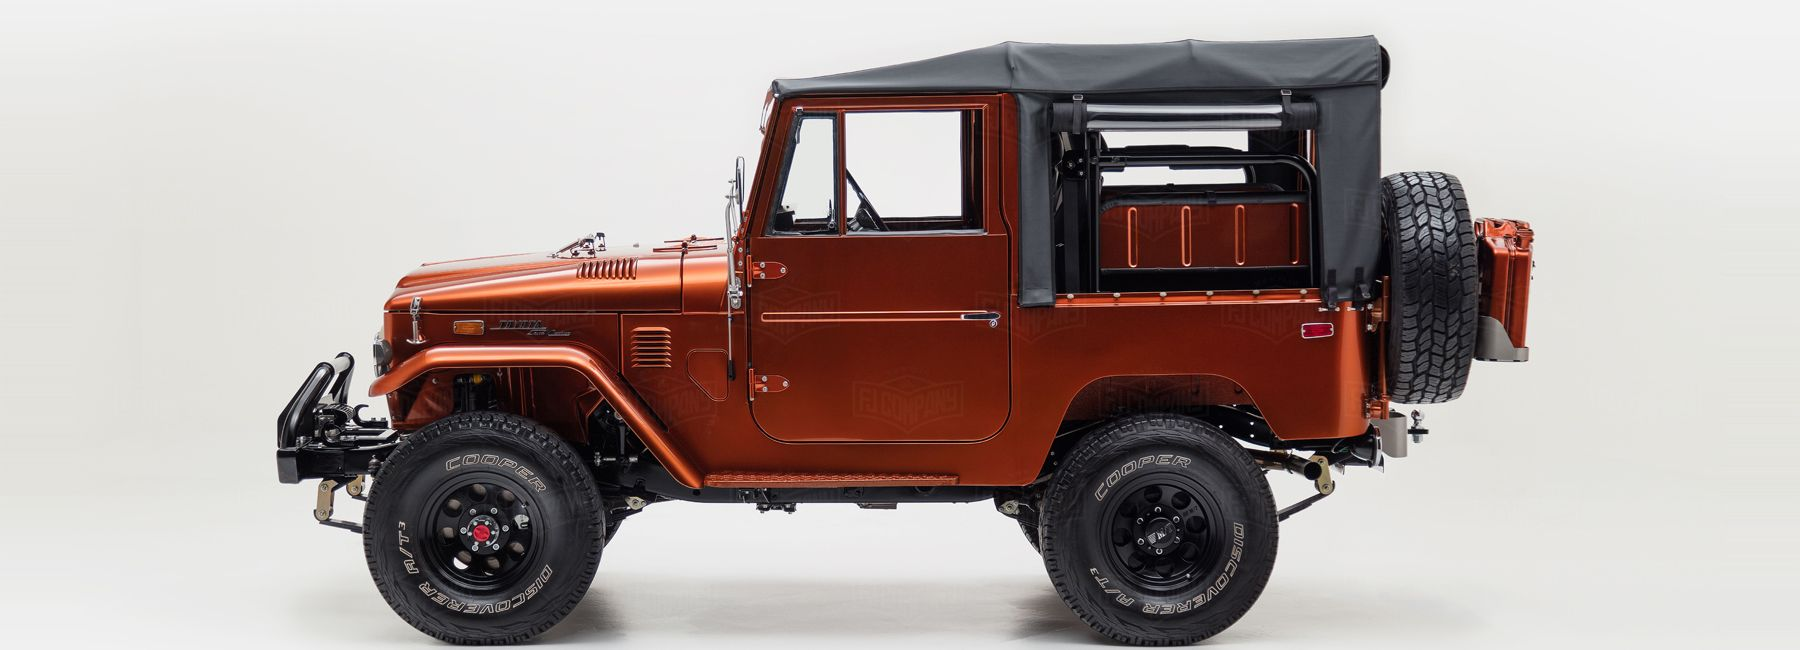 The FJ Company build some of the most handsome custom Toyota Land